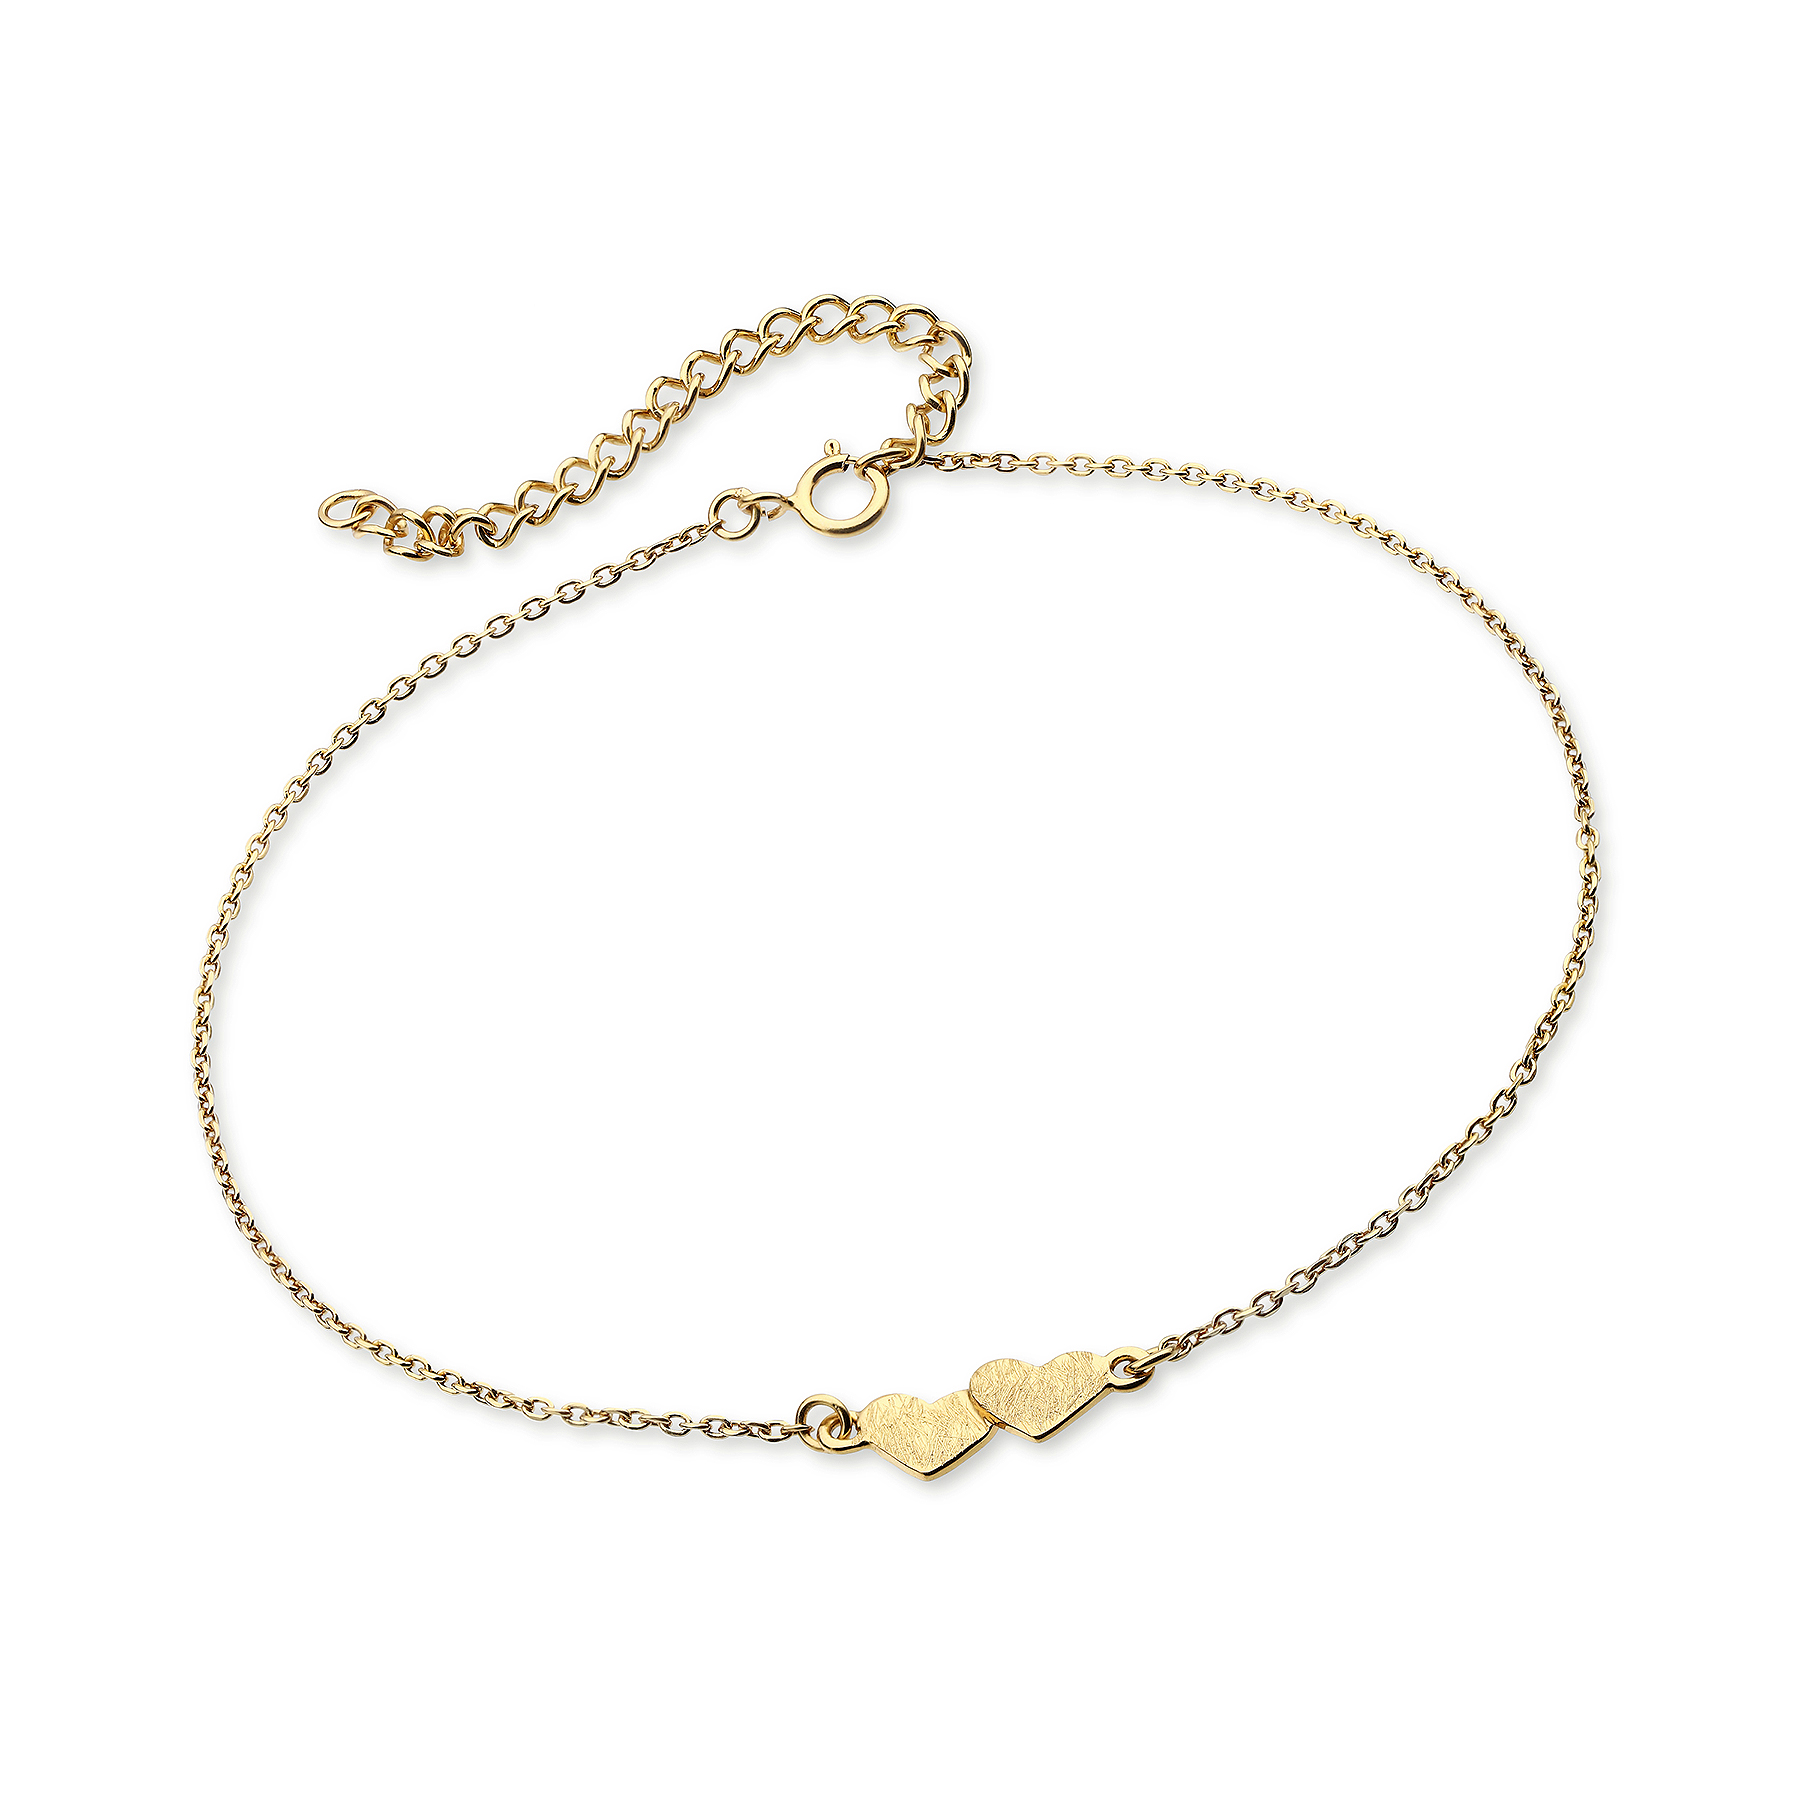 1535-393 - 925 Sterling Silver Bracelet Featuring Heart Plated With 1 Micron 18K Yellow Gold (Matt Look)